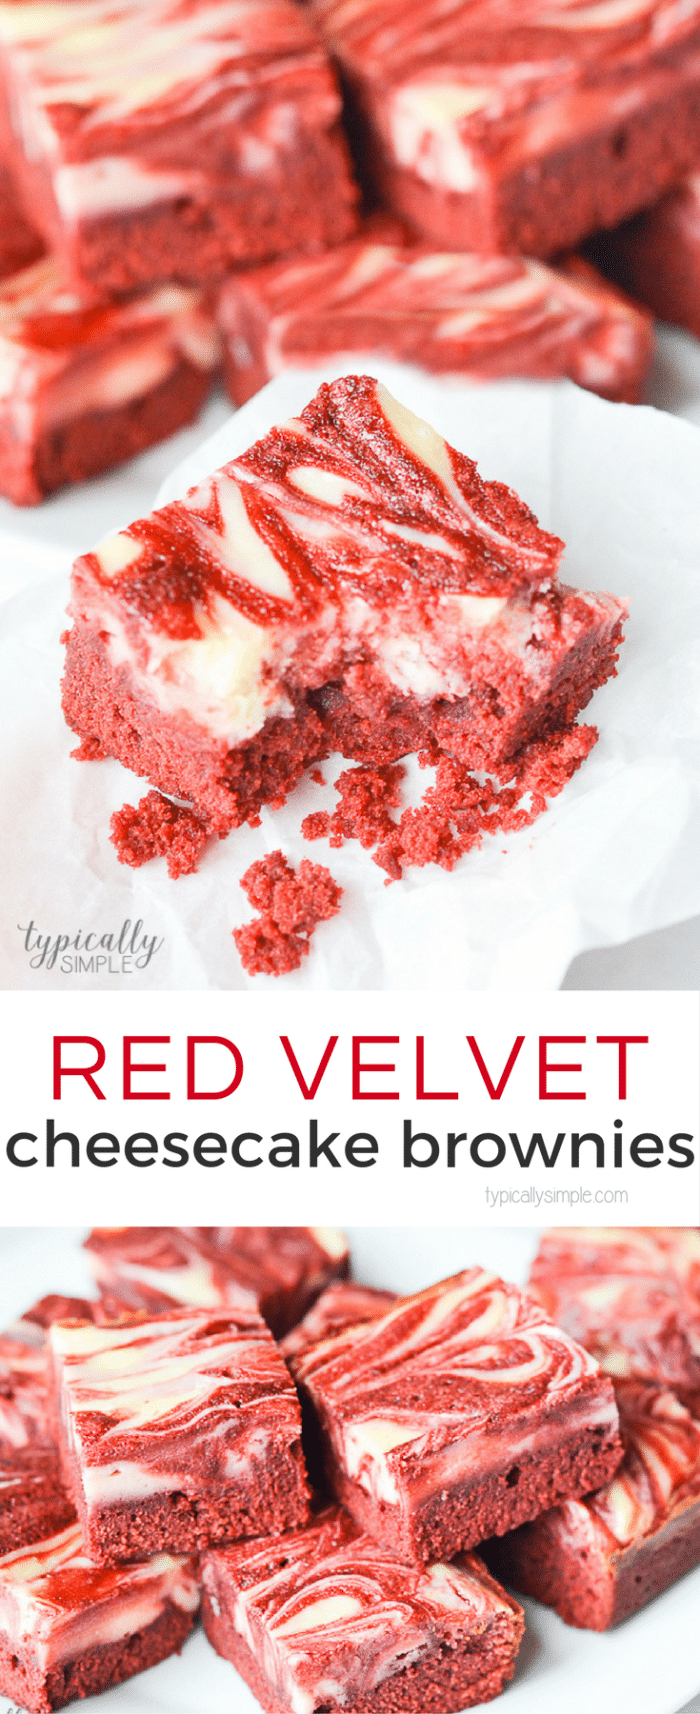 Red velvet brownies topped with a cheesecake swirl, this decadent treat is perfect to serve as a yummy Valentine's Day dessert!